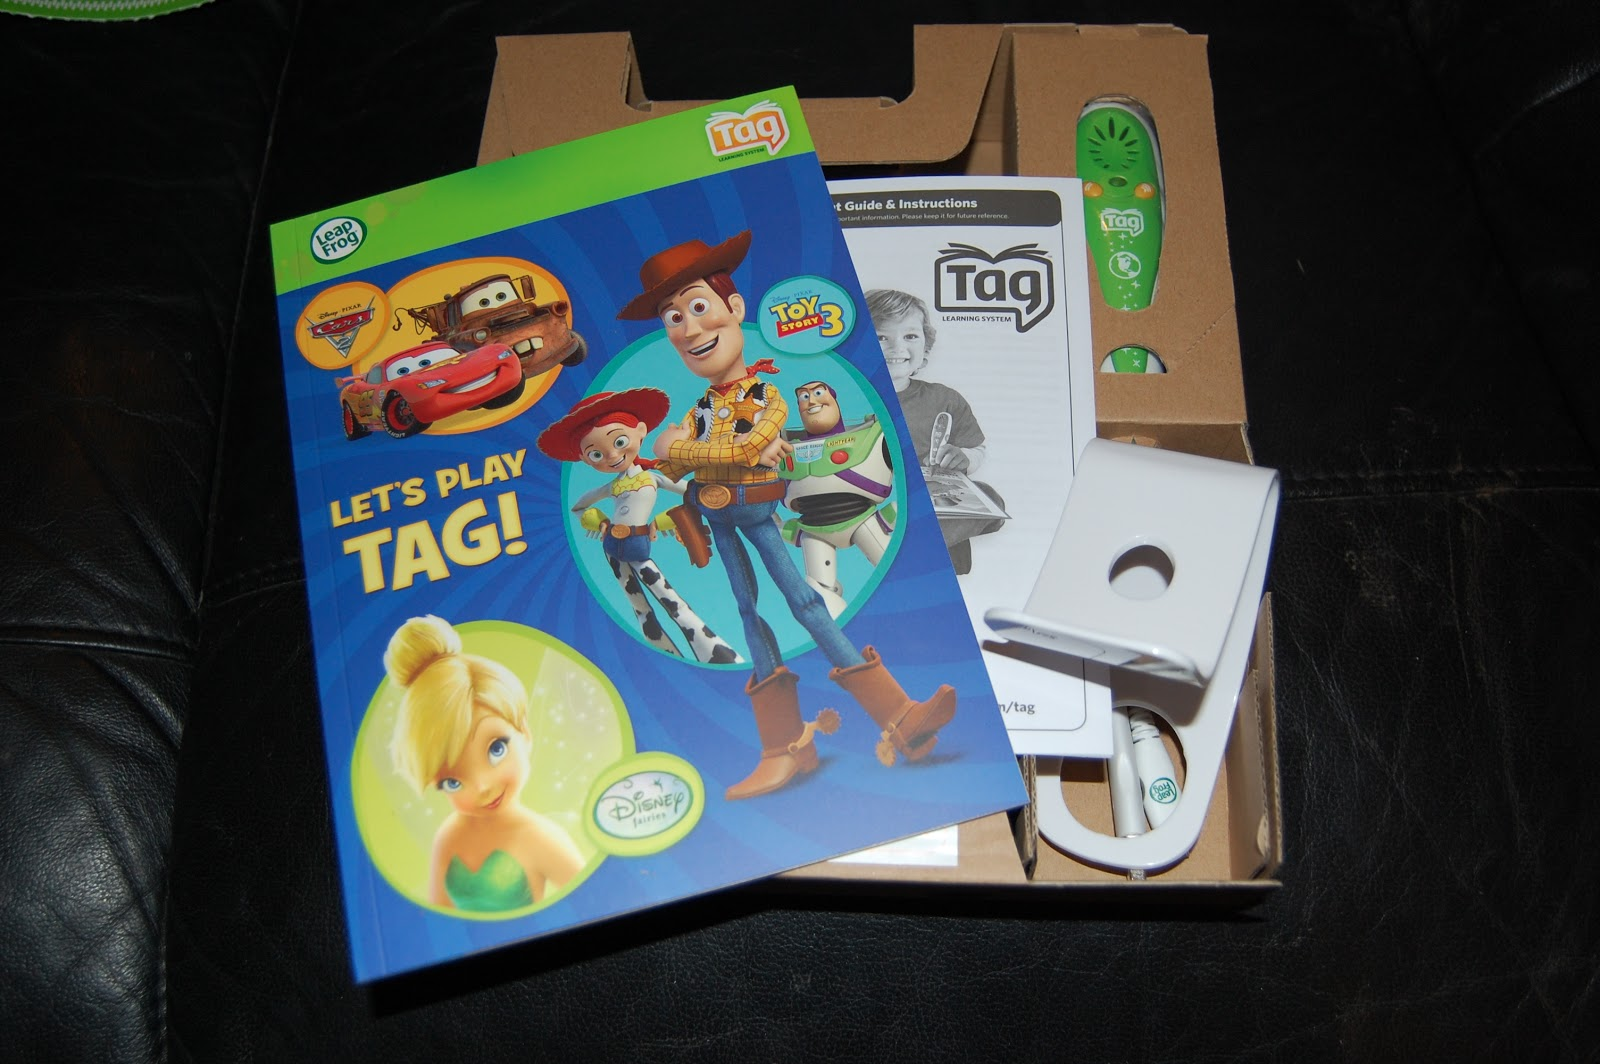 Leapfrog tag reading system my three and me the tag reader is really easy to set up you just need to insert 2 aaa batteries not included and connect it to your pc via the usb cable sciox Choice Image